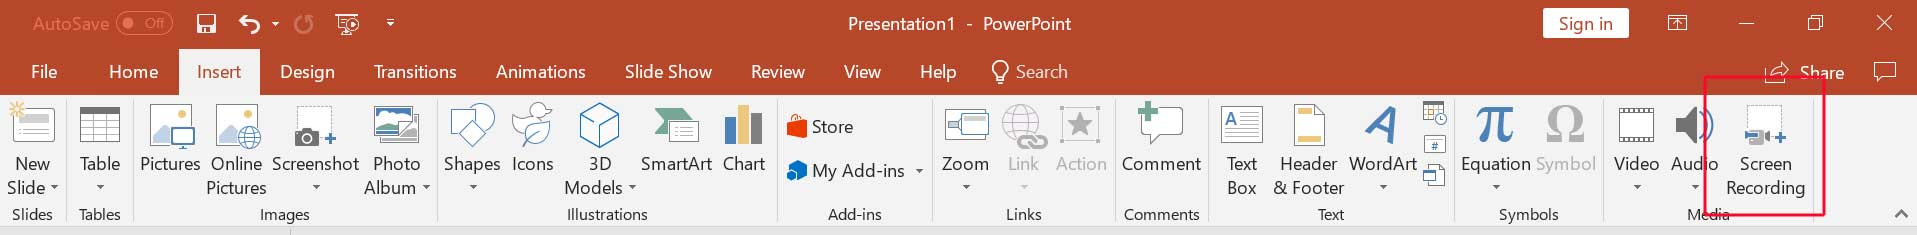 screen recording PowerPoint